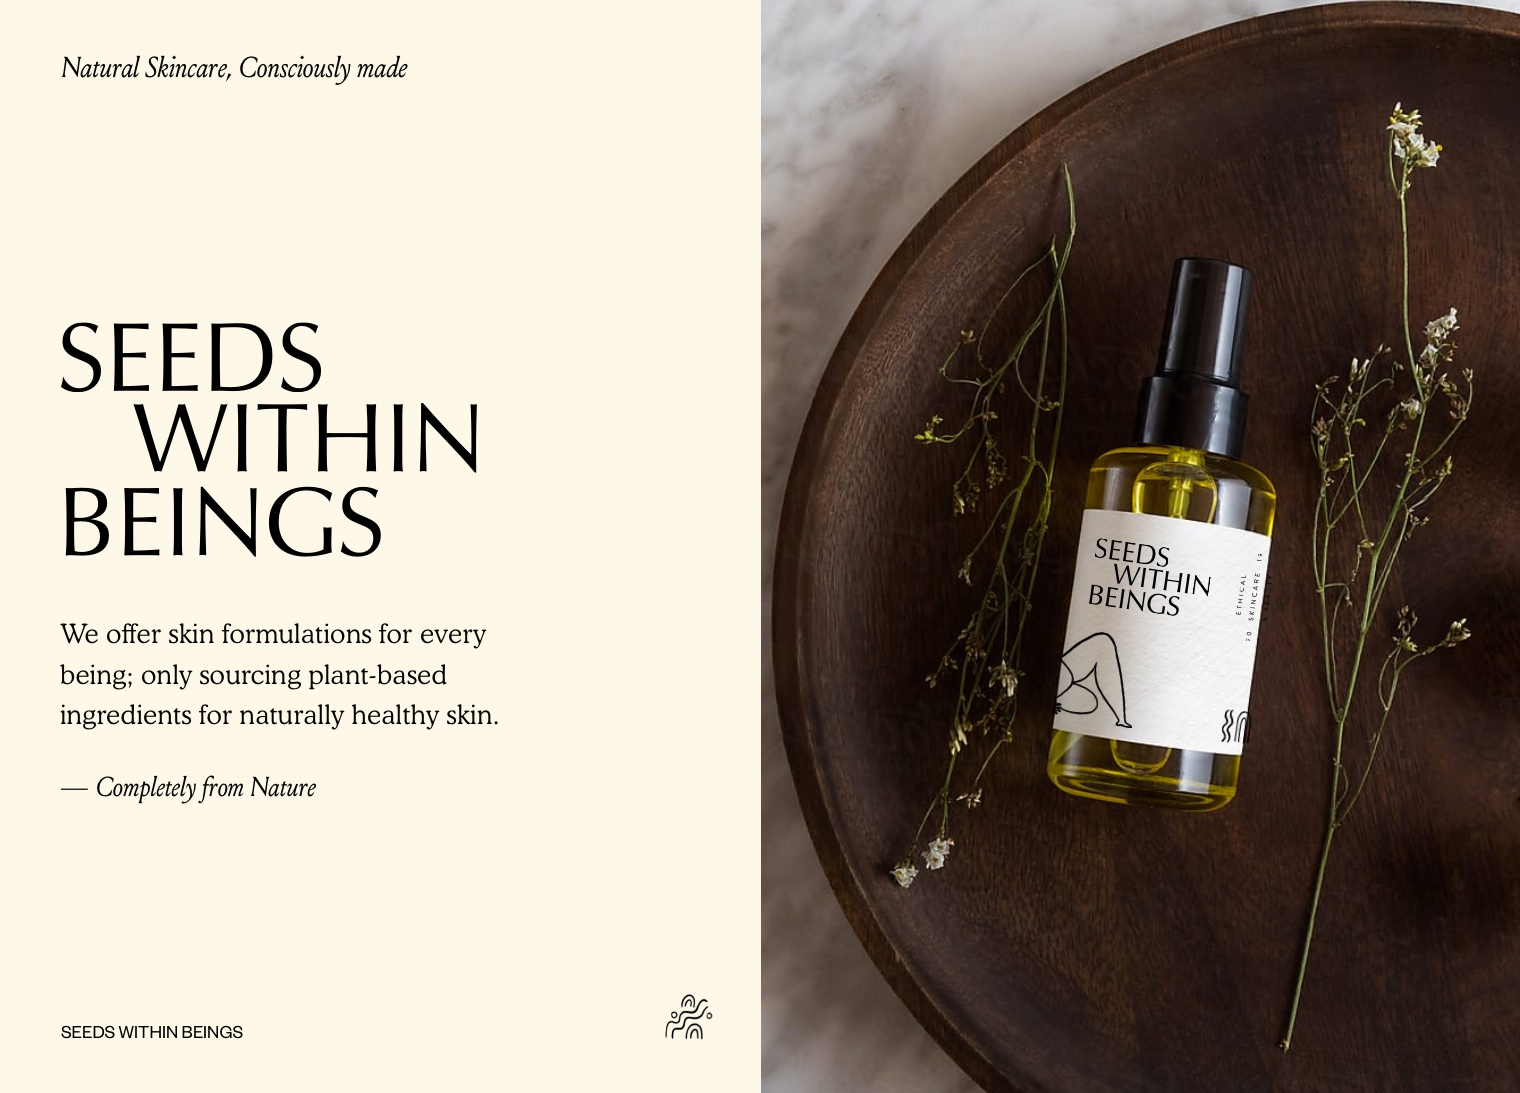 vegan-skincare-serum-ethical-design-agency-sustainable-brands-graphic-designer-sydney-byron-bay-bondi-melbourne-branding.jpg